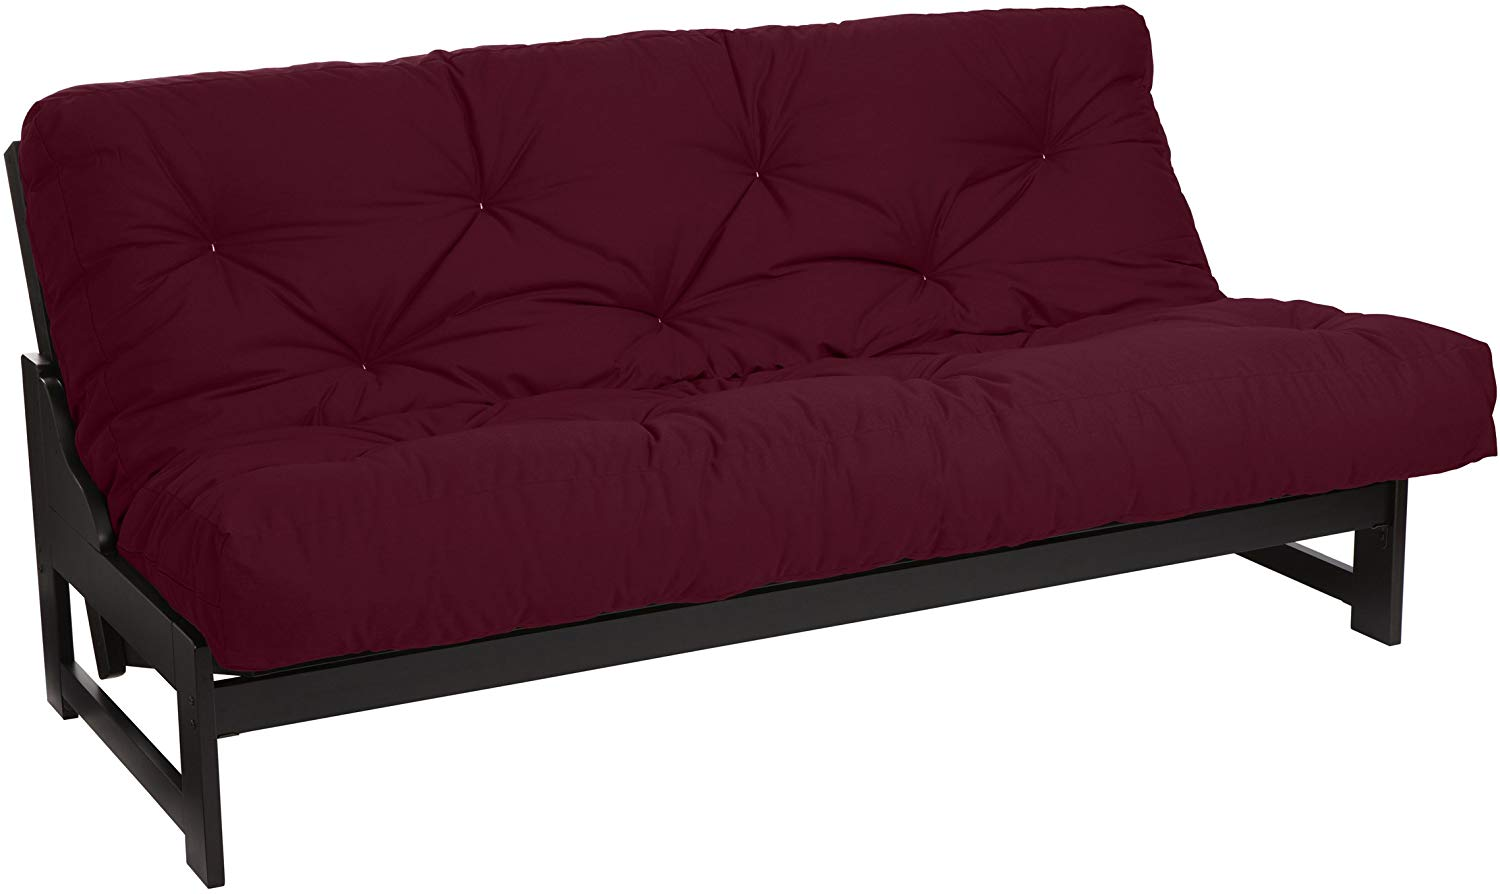 Top 10 Best Futon Mattresses In 2020